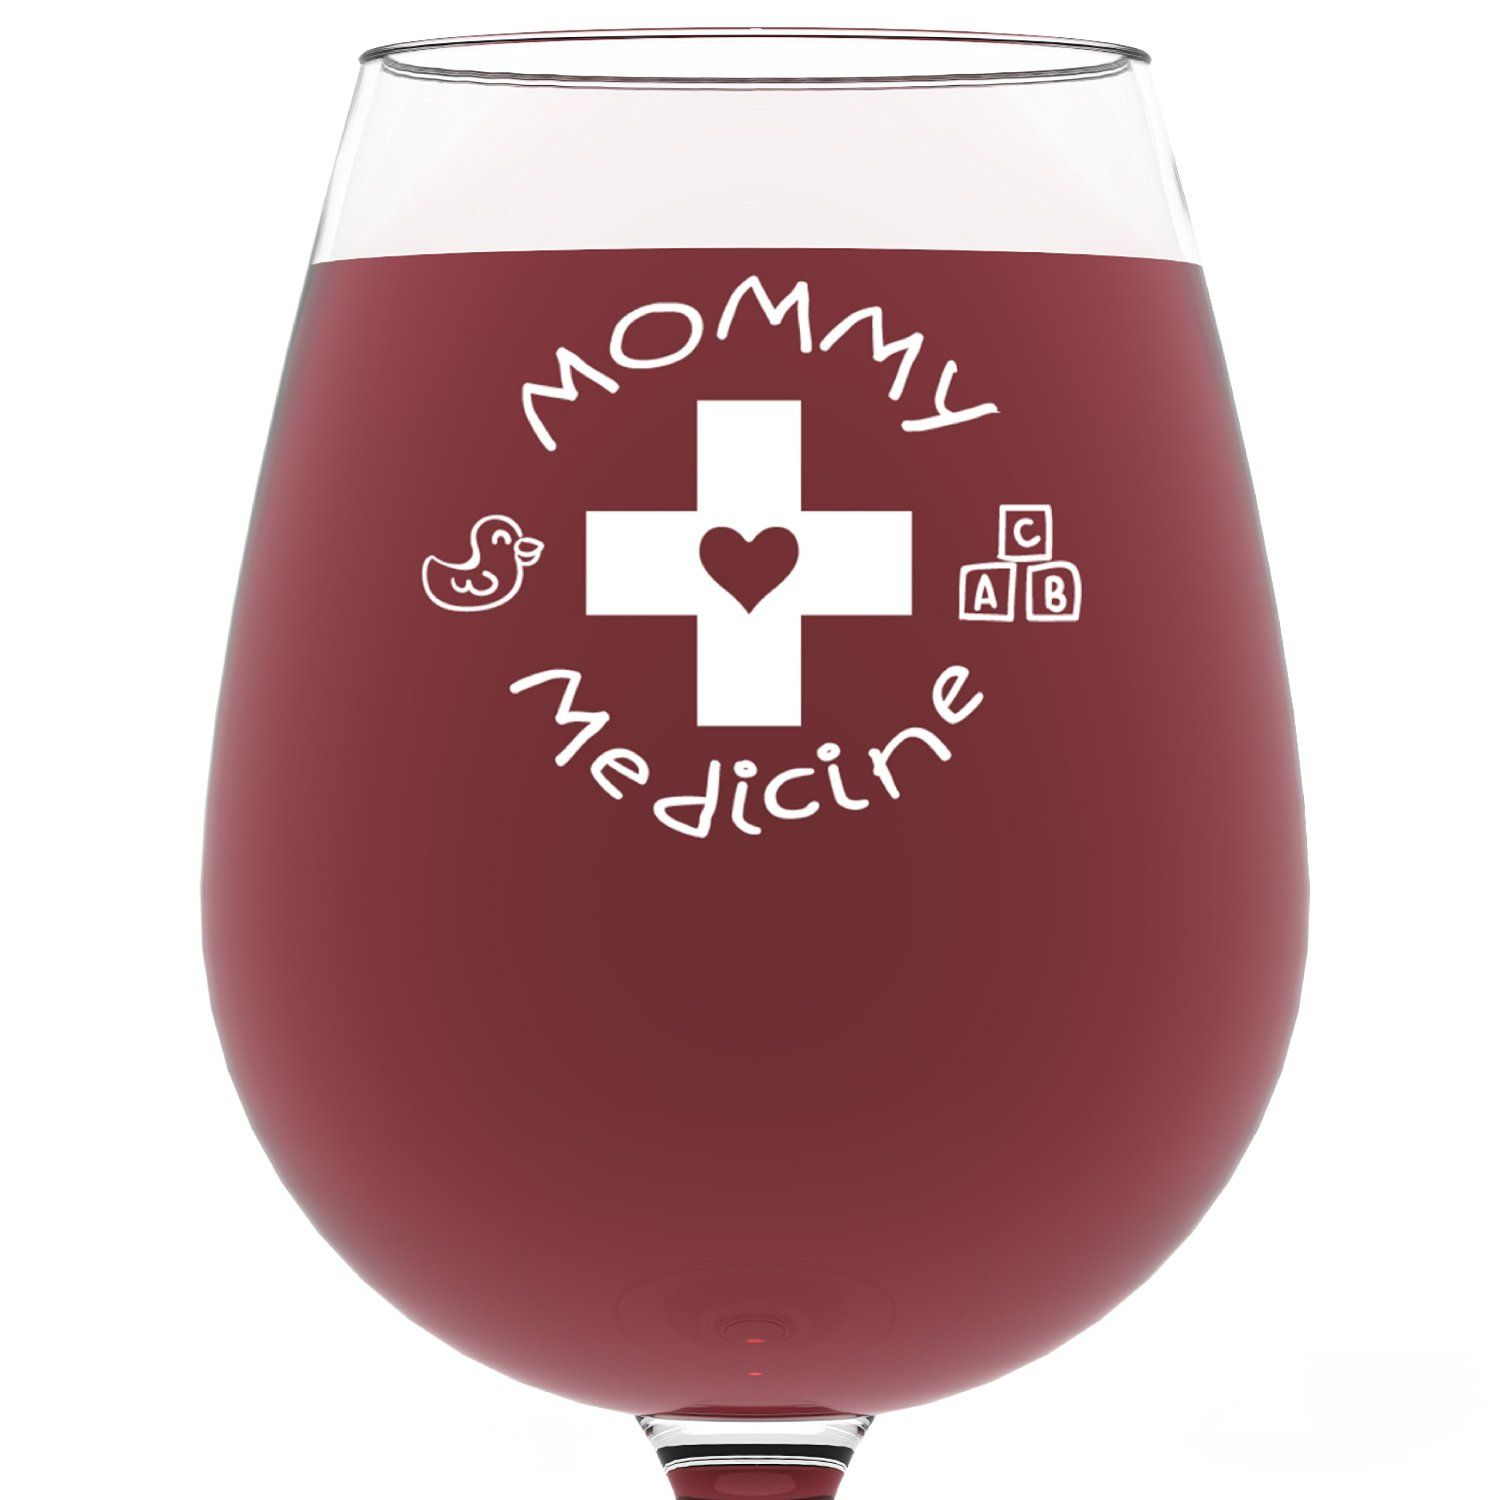 Ordinary Funny Presents For Her Part - 9: Mommy Medicine Funny Wine Glass 13 Oz - Best Motheru0027s Day Gifts For Mom -  Unique Birthday Gift For Her From Son Or Daughter - Cool Humorous Present  Idea For ...